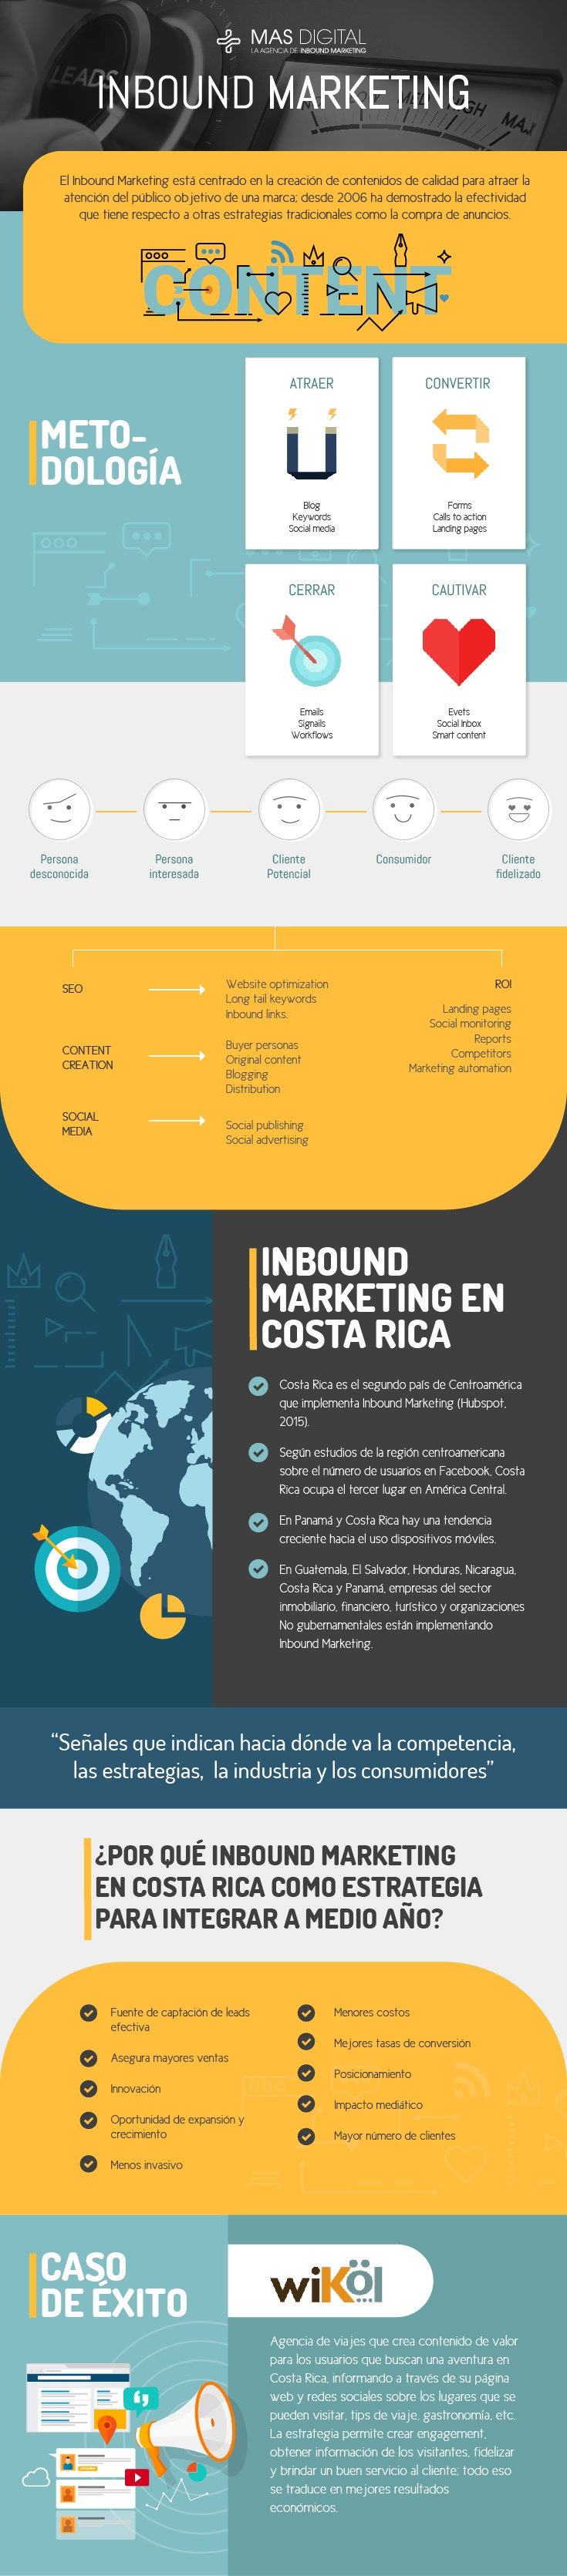 Inbound Marketing en Costa Rica como estrategia para integrar a medio ano.jpg